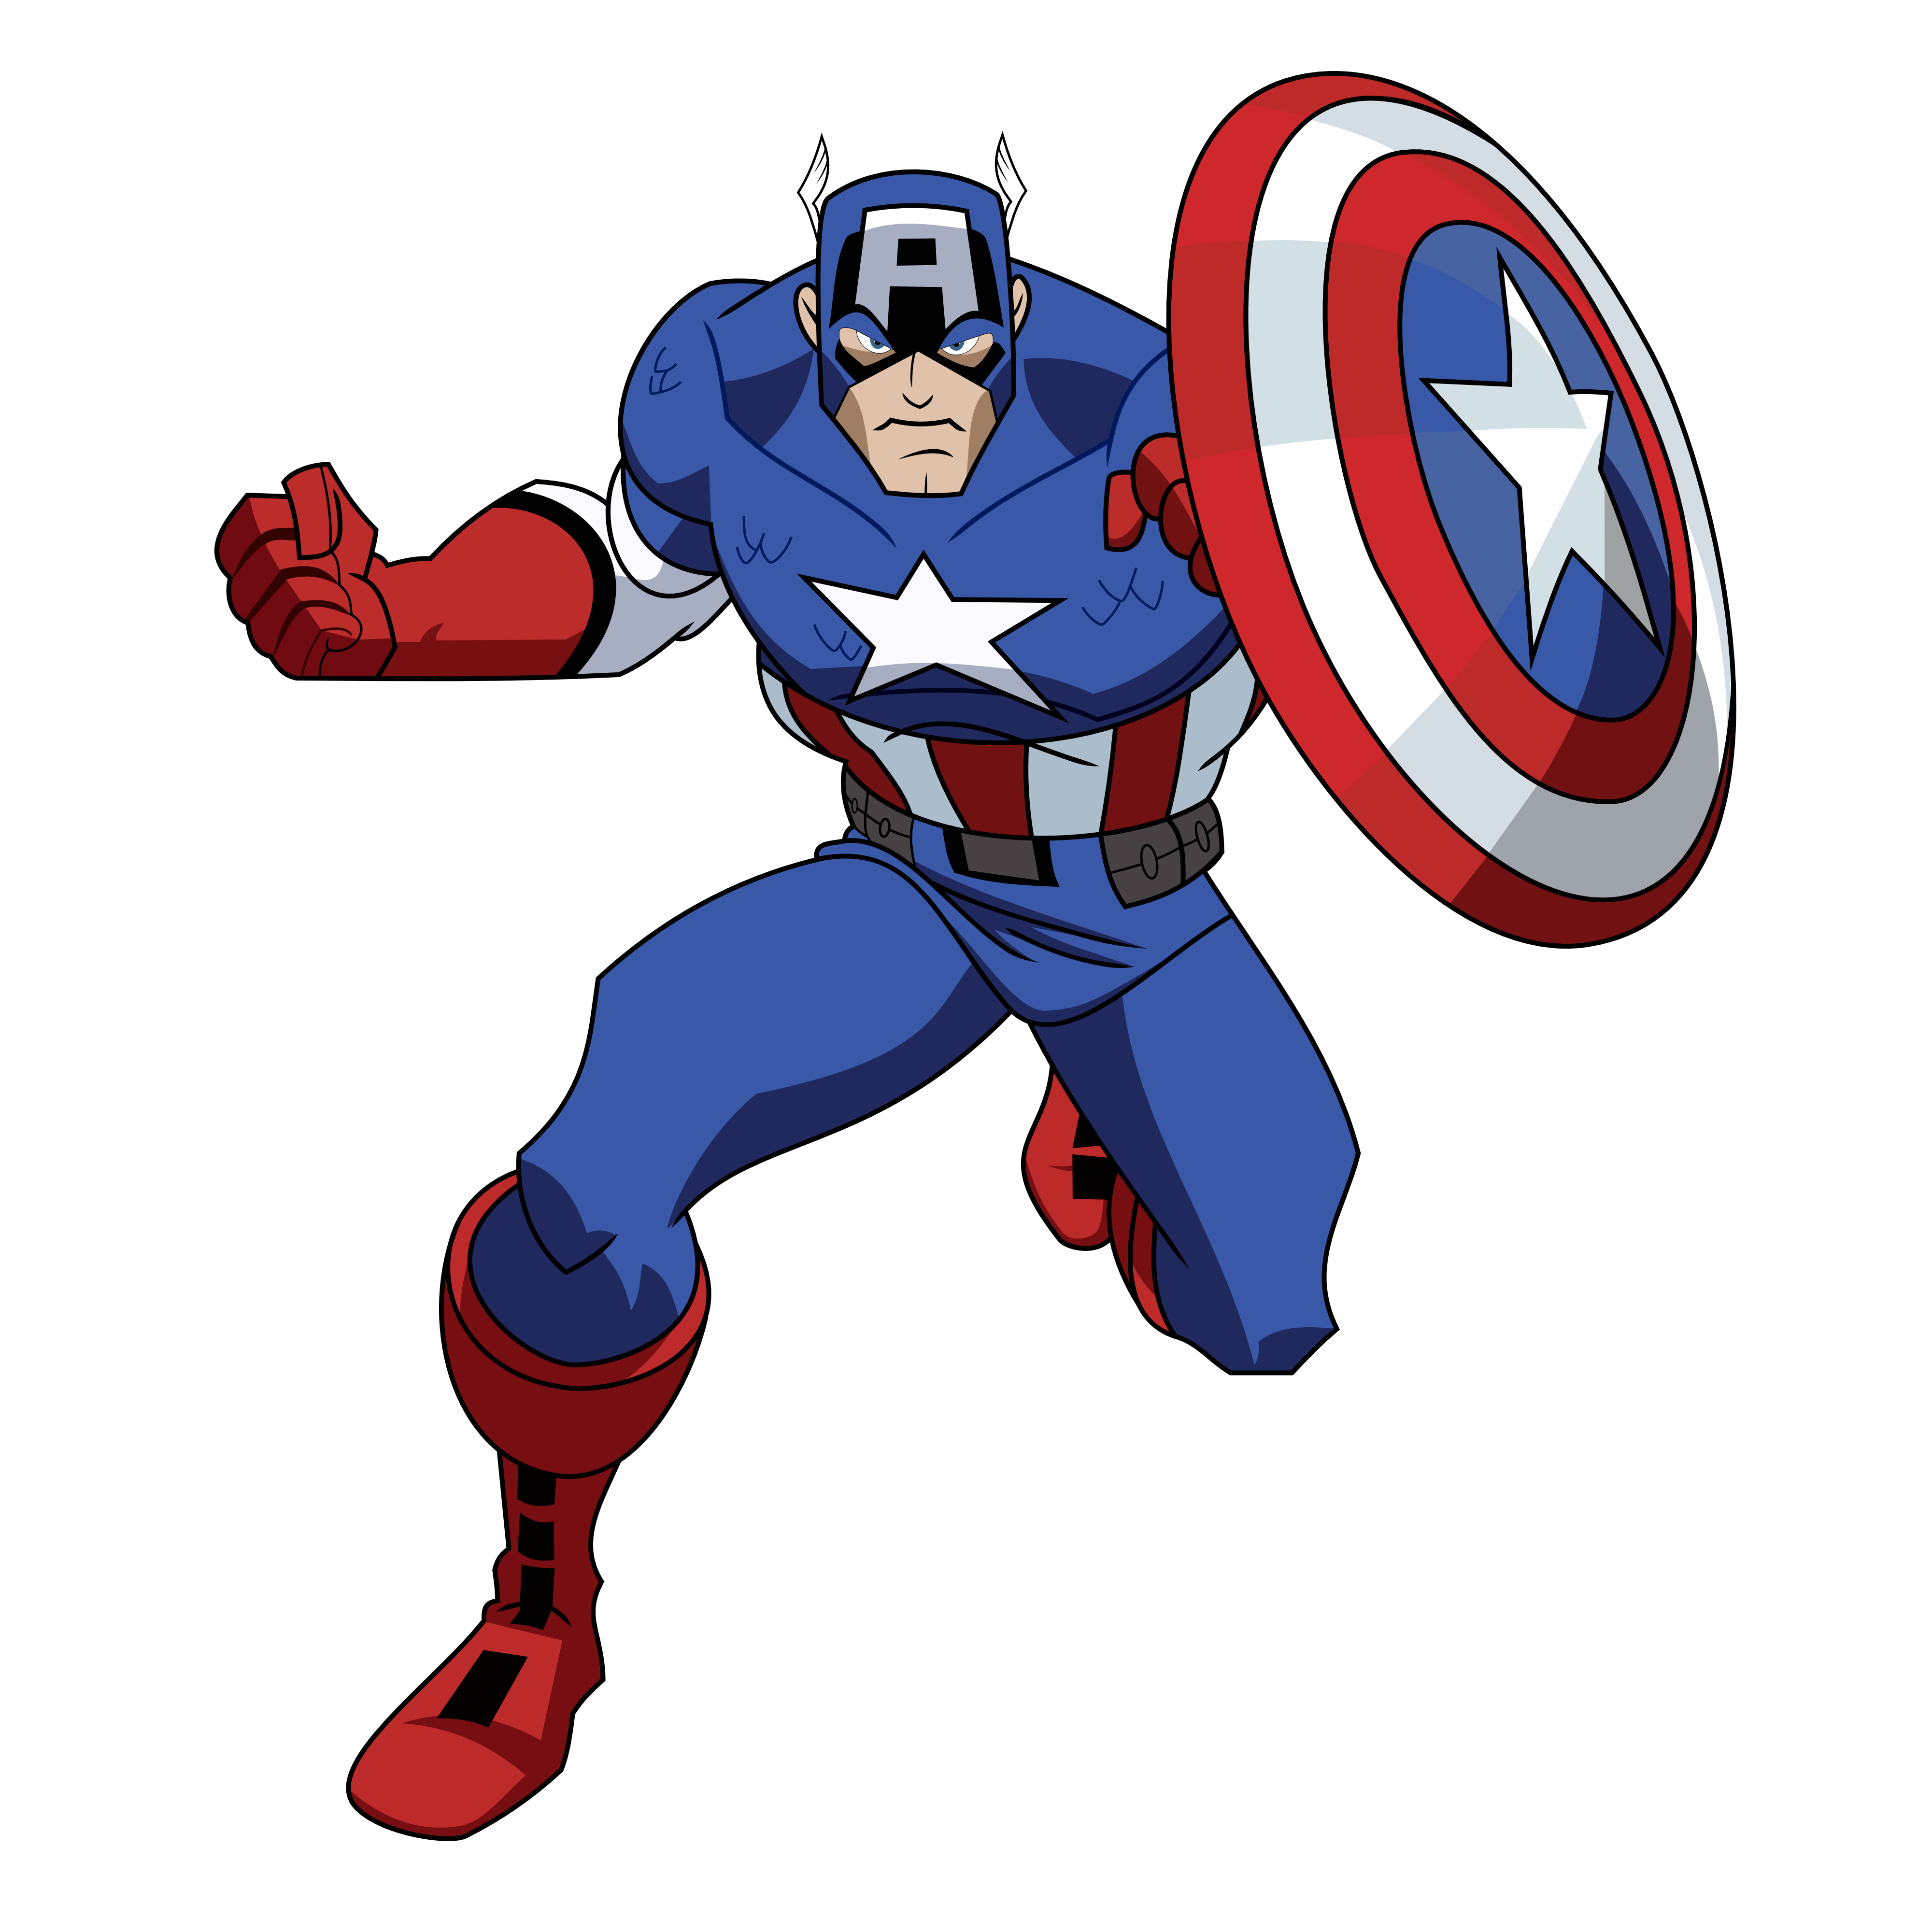 CAPTAIN AMERICA CARTOON AVENGERS